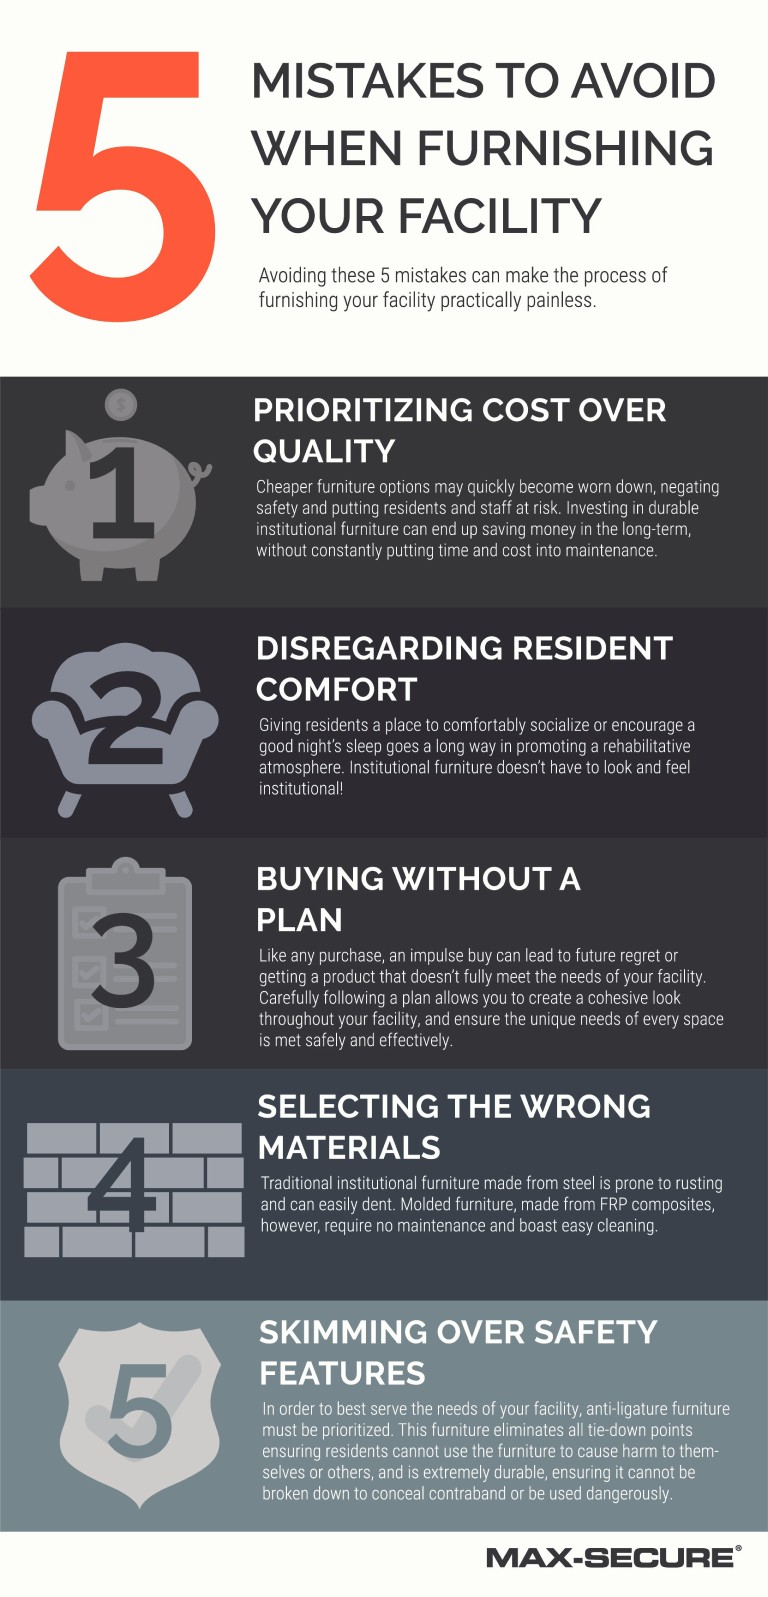 5 Mistakes to avoid when furnishing your facility